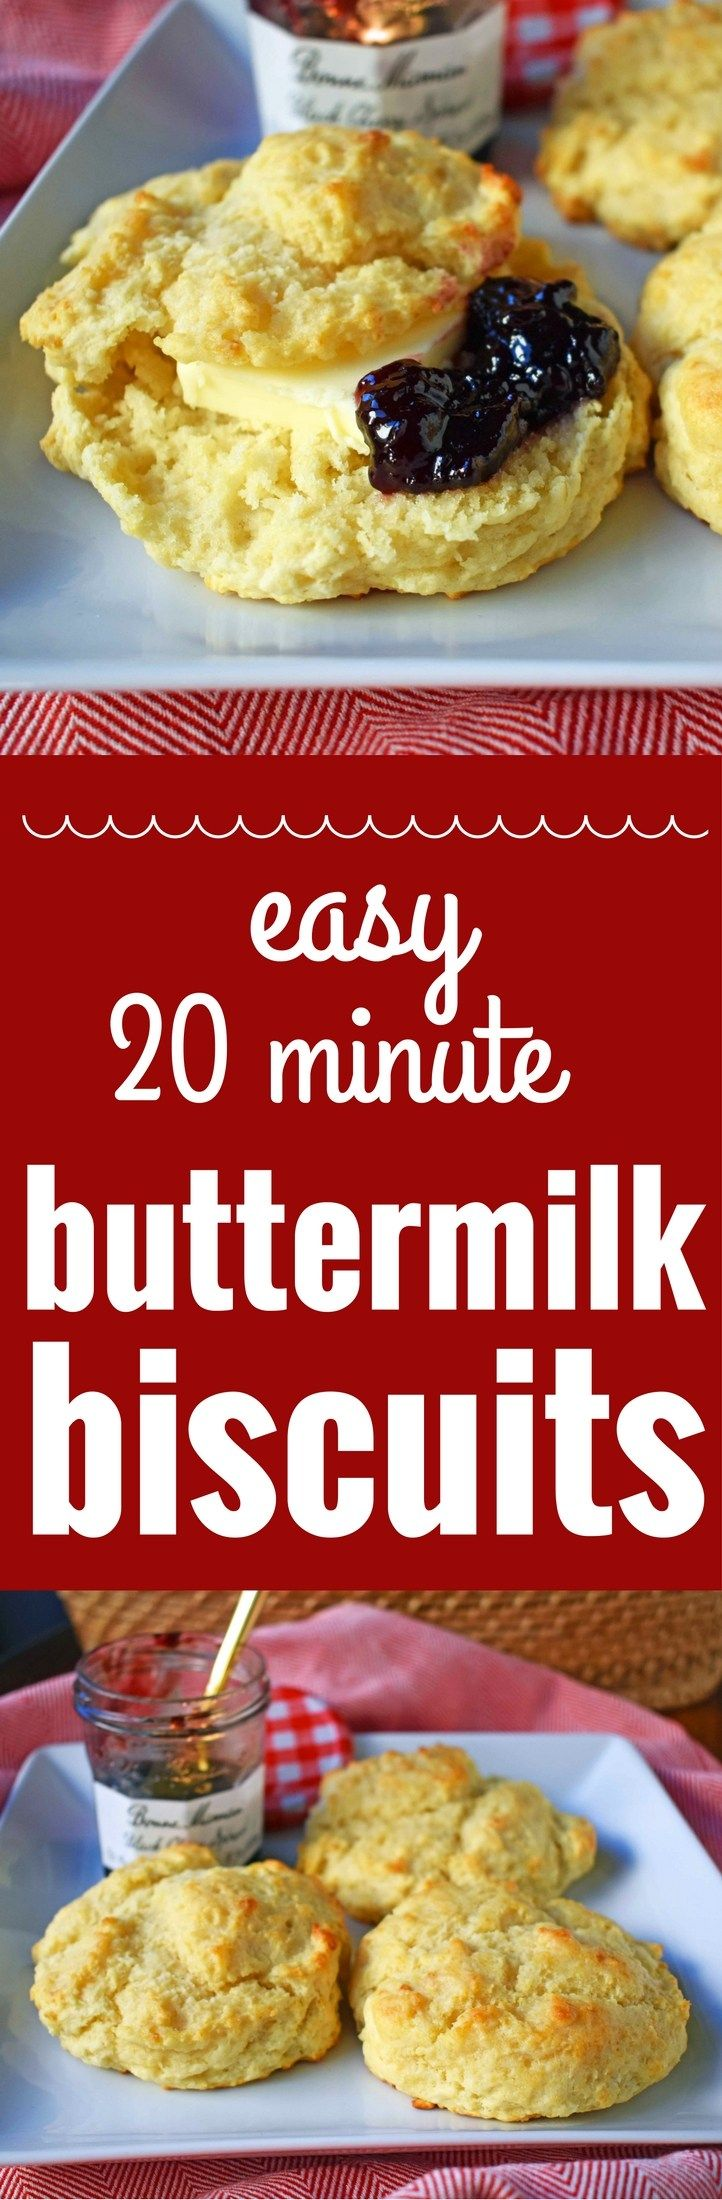 Easy Buttermilk Drop Biscuits. Homemade buttery, flaky biscuits made in less than 20 minutes. A tender, made from scratch biscuit with a crispy outer crust that is super simple to make. www.modernhoney.com